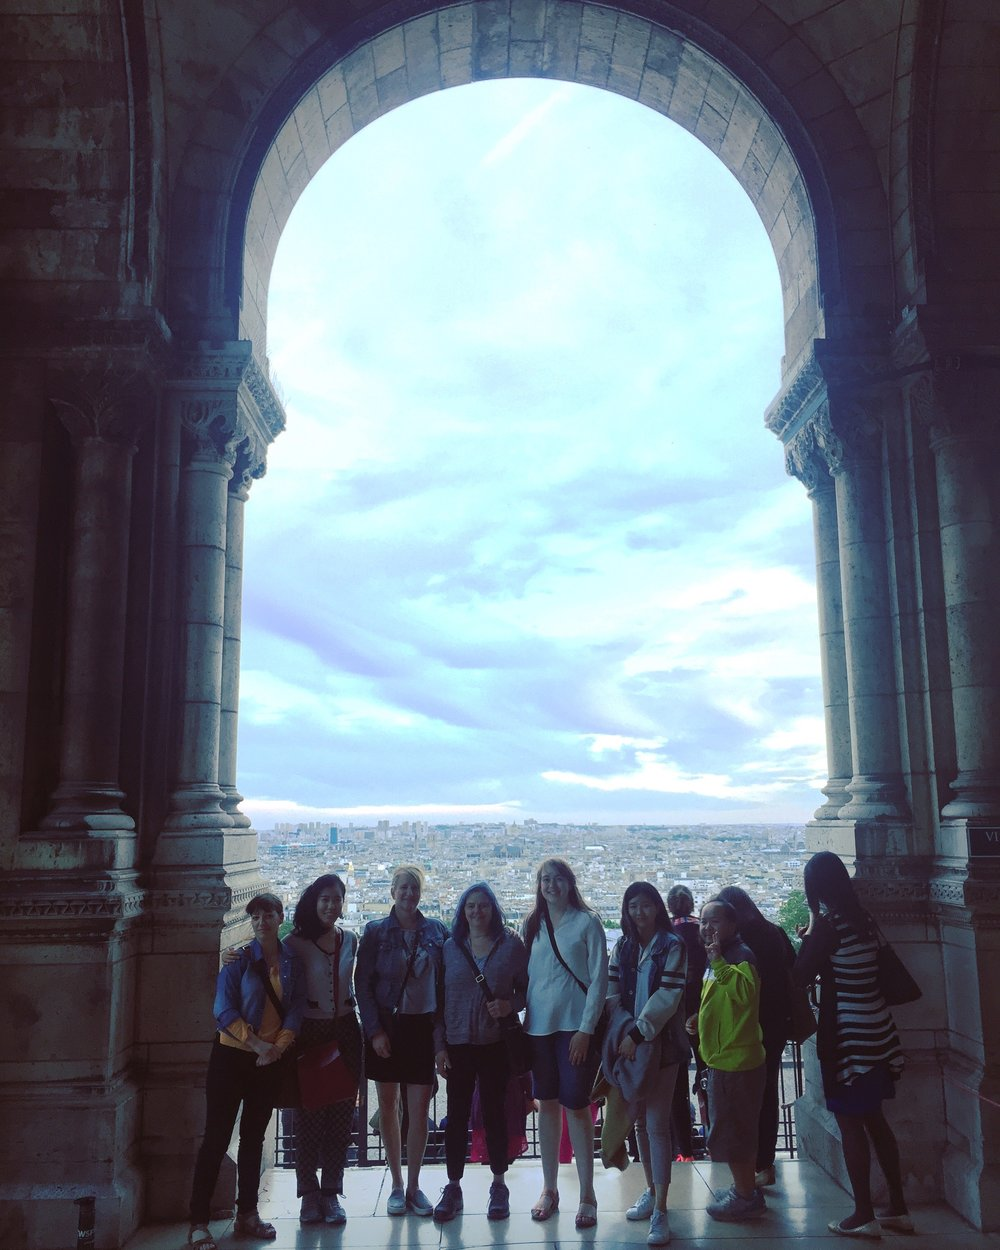 Group picture overlooking the city at sunset from the Sacre Coeur Basilica portico in Montmartre-- Josie at center.